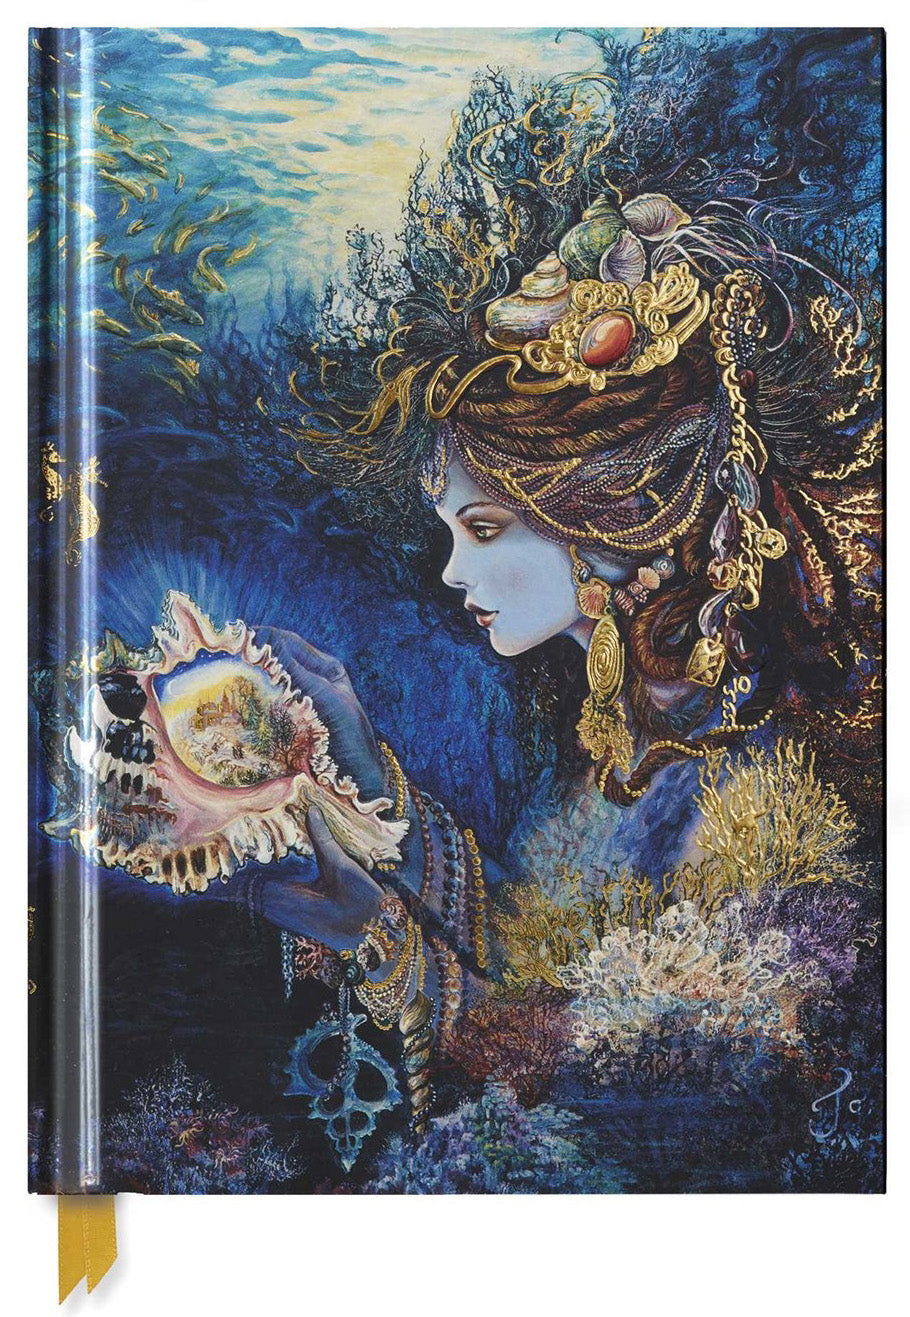 Josephine Wall: Daughter of the Deep Sketchbook